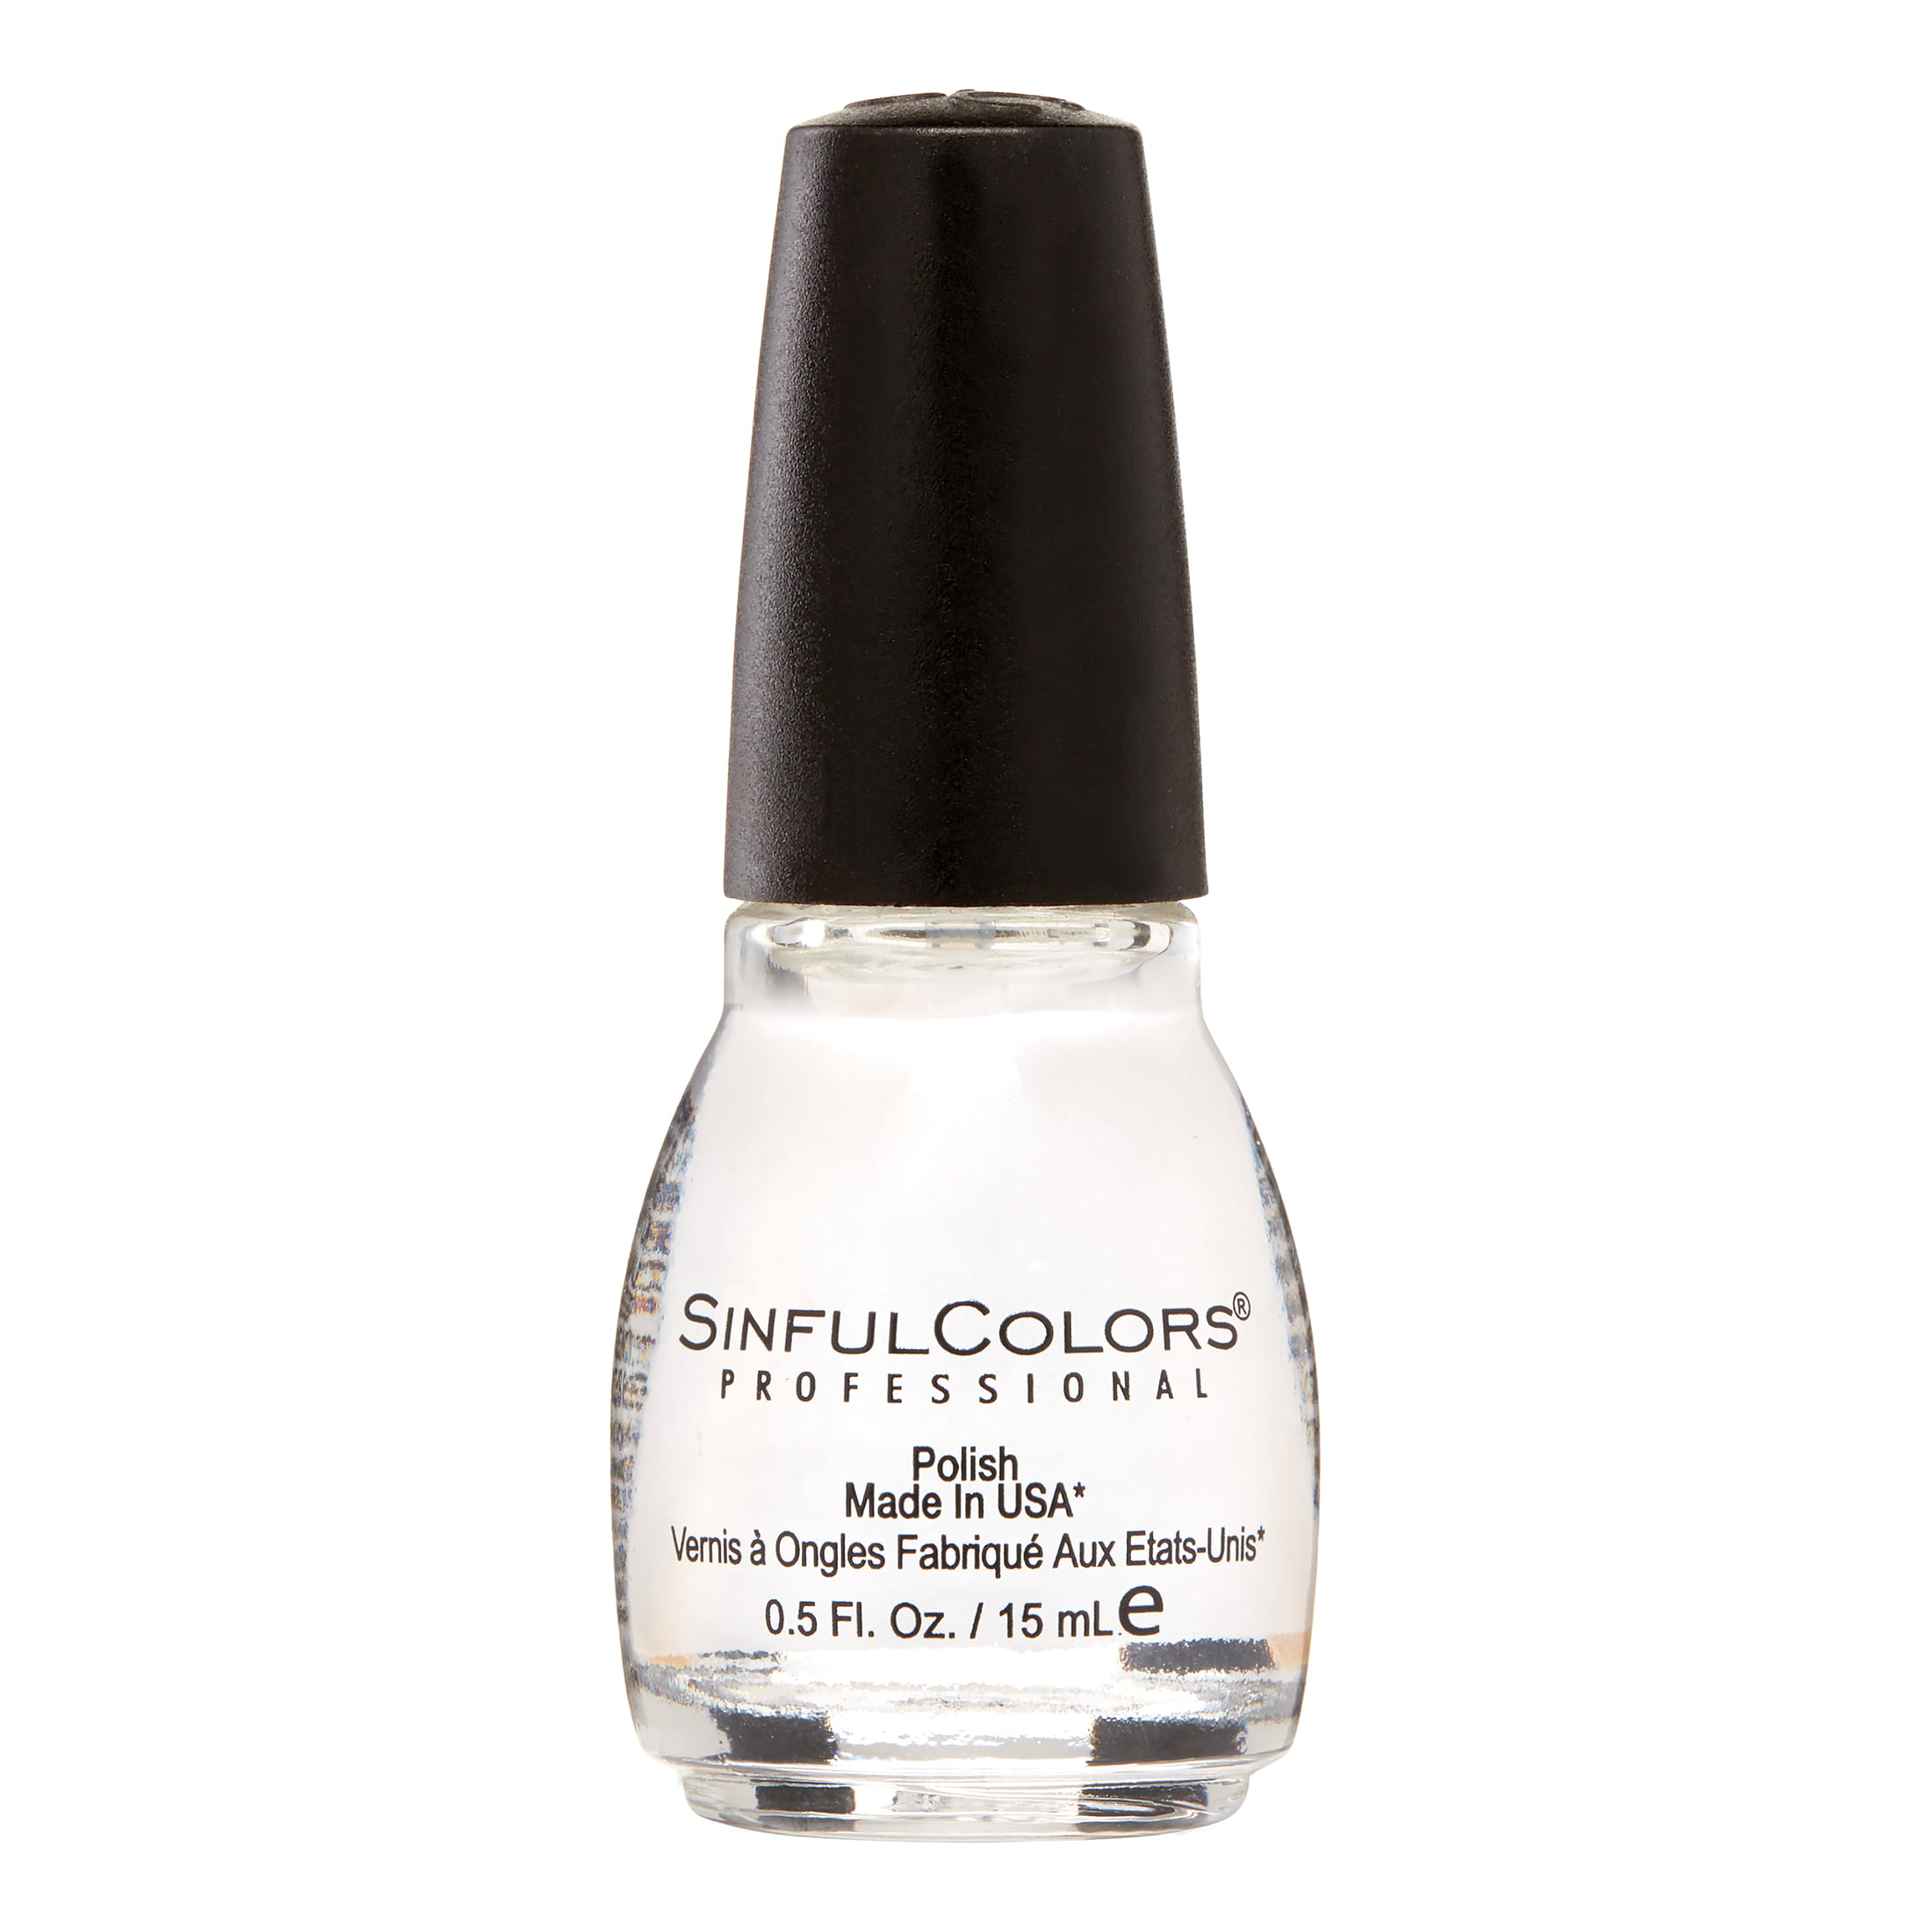 Sinful Colors Professional Nail Polish, Clear Coat, 0.5 Fl Oz ...